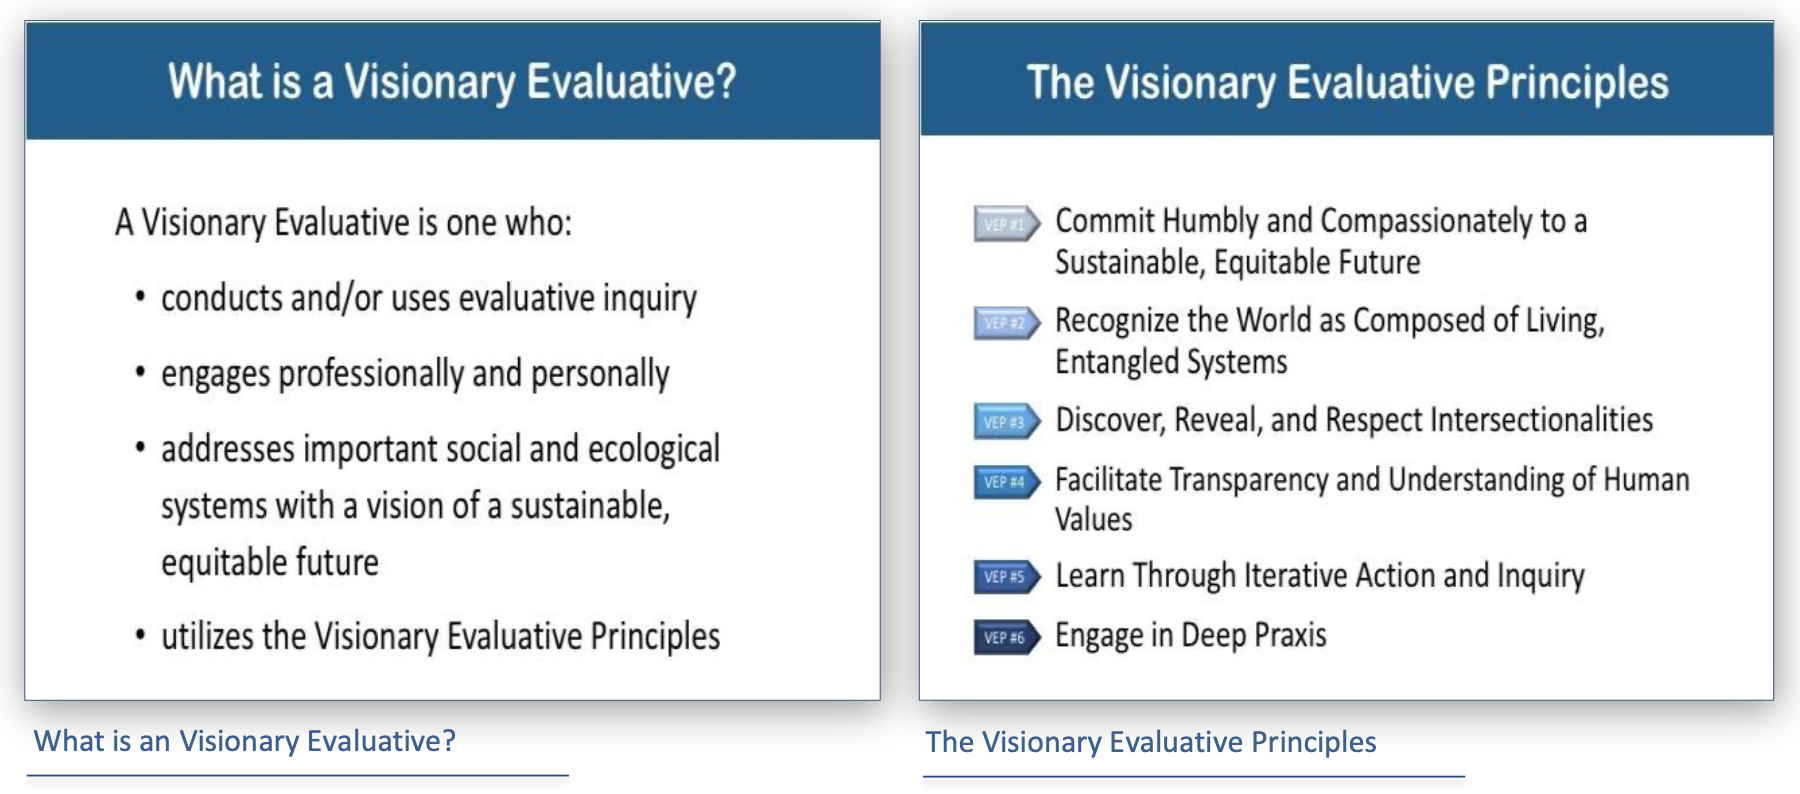 is a Visionary Evaluative and The Visionary Evaluation Principles bullet points